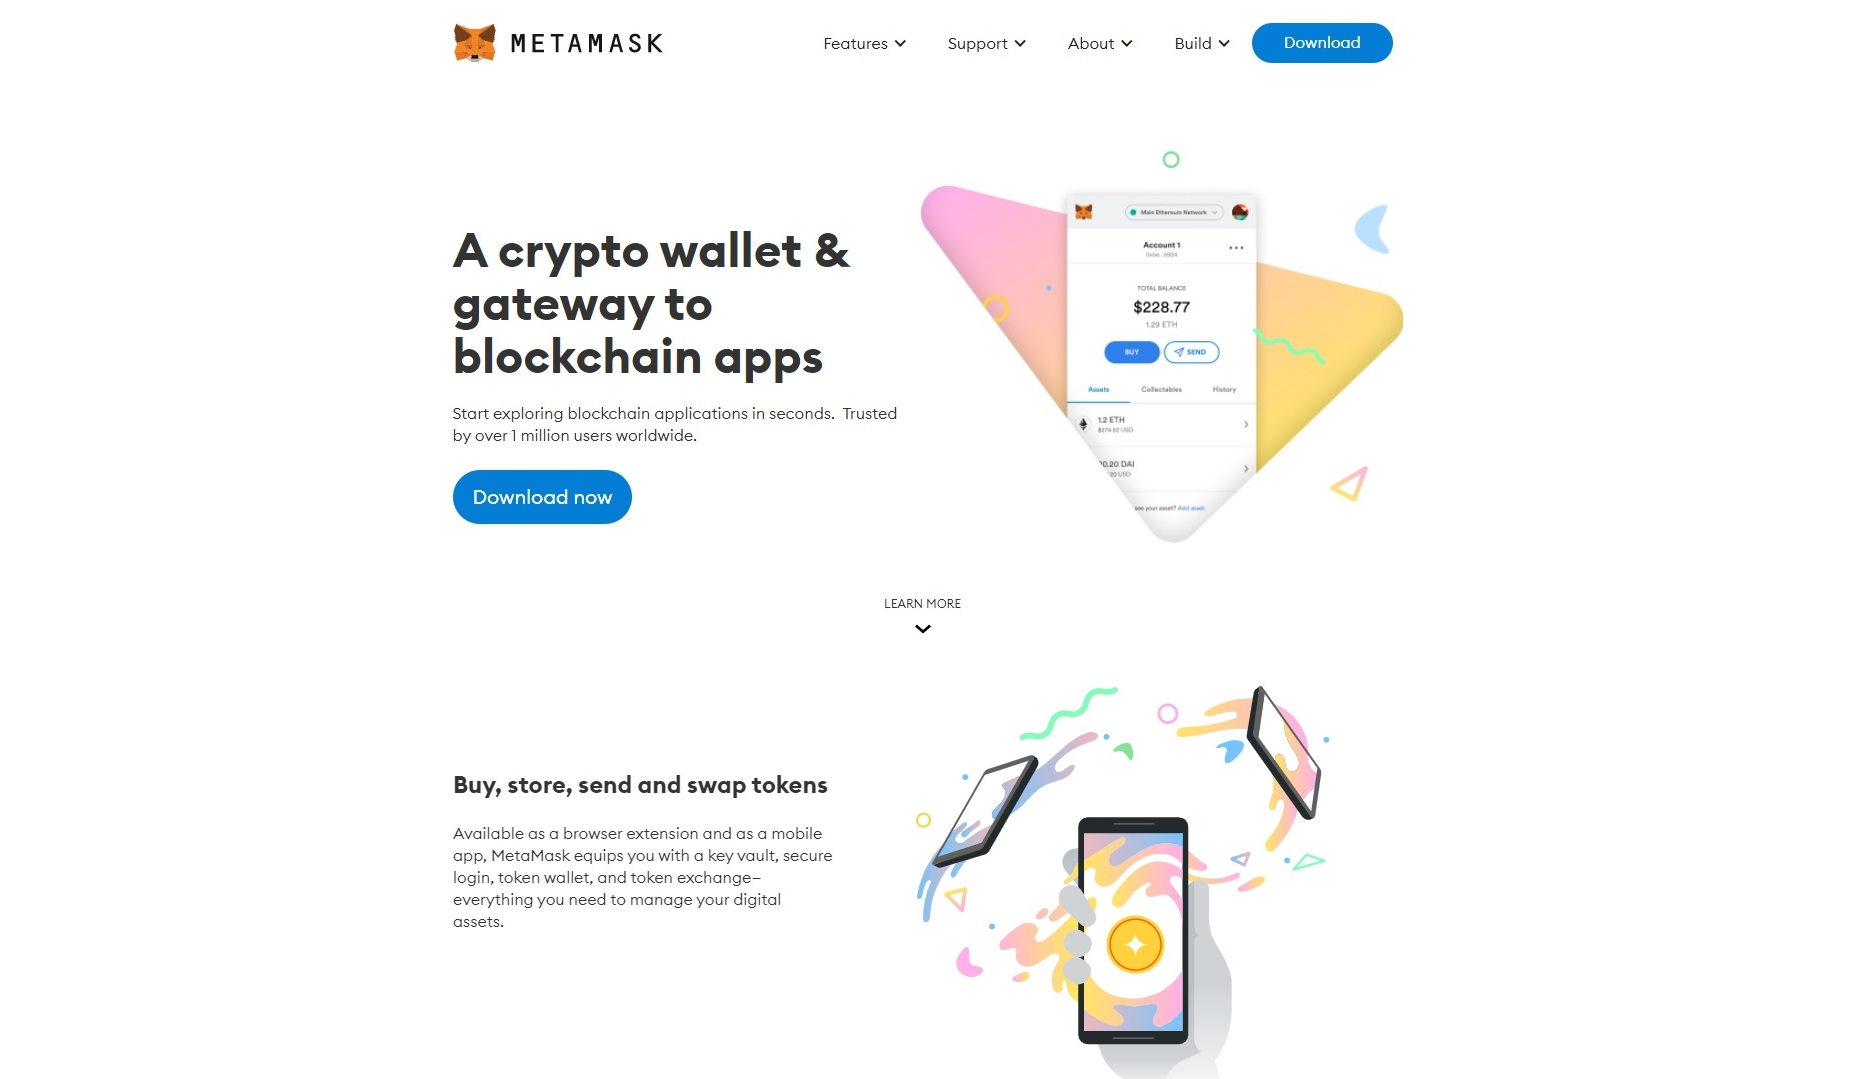 About the wallet